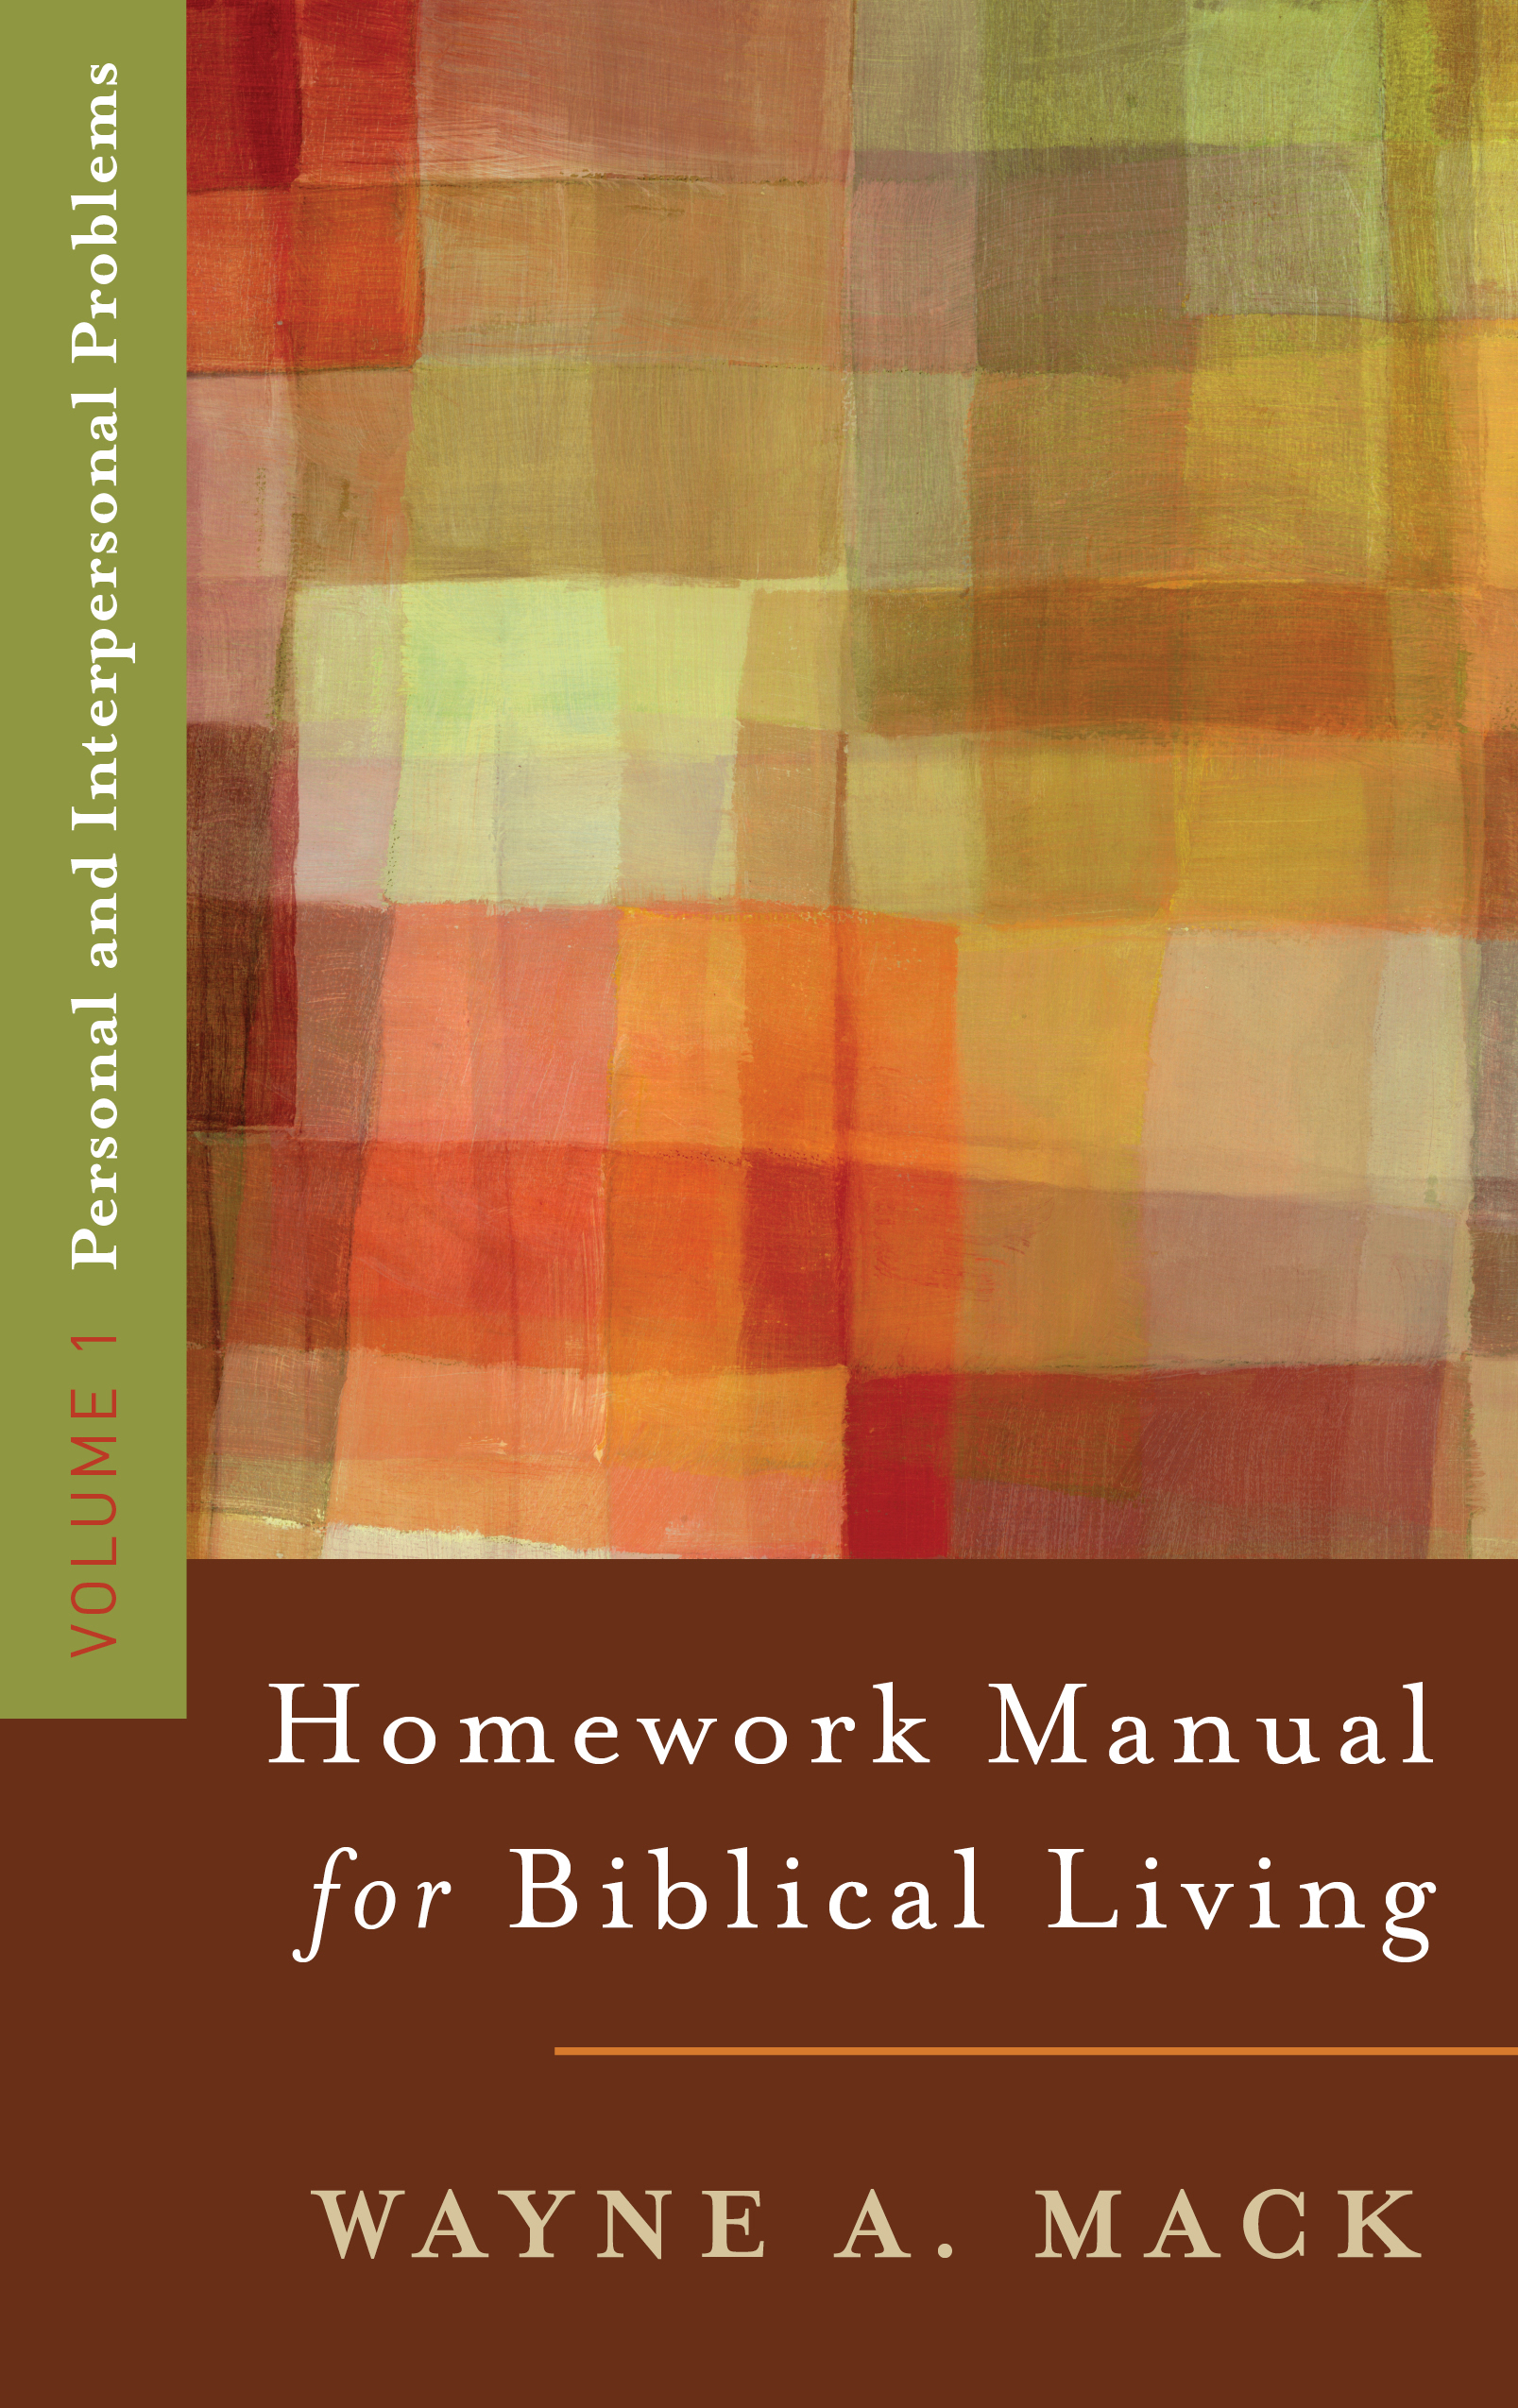 Homework Manual for Biblical Living, VOL. 1